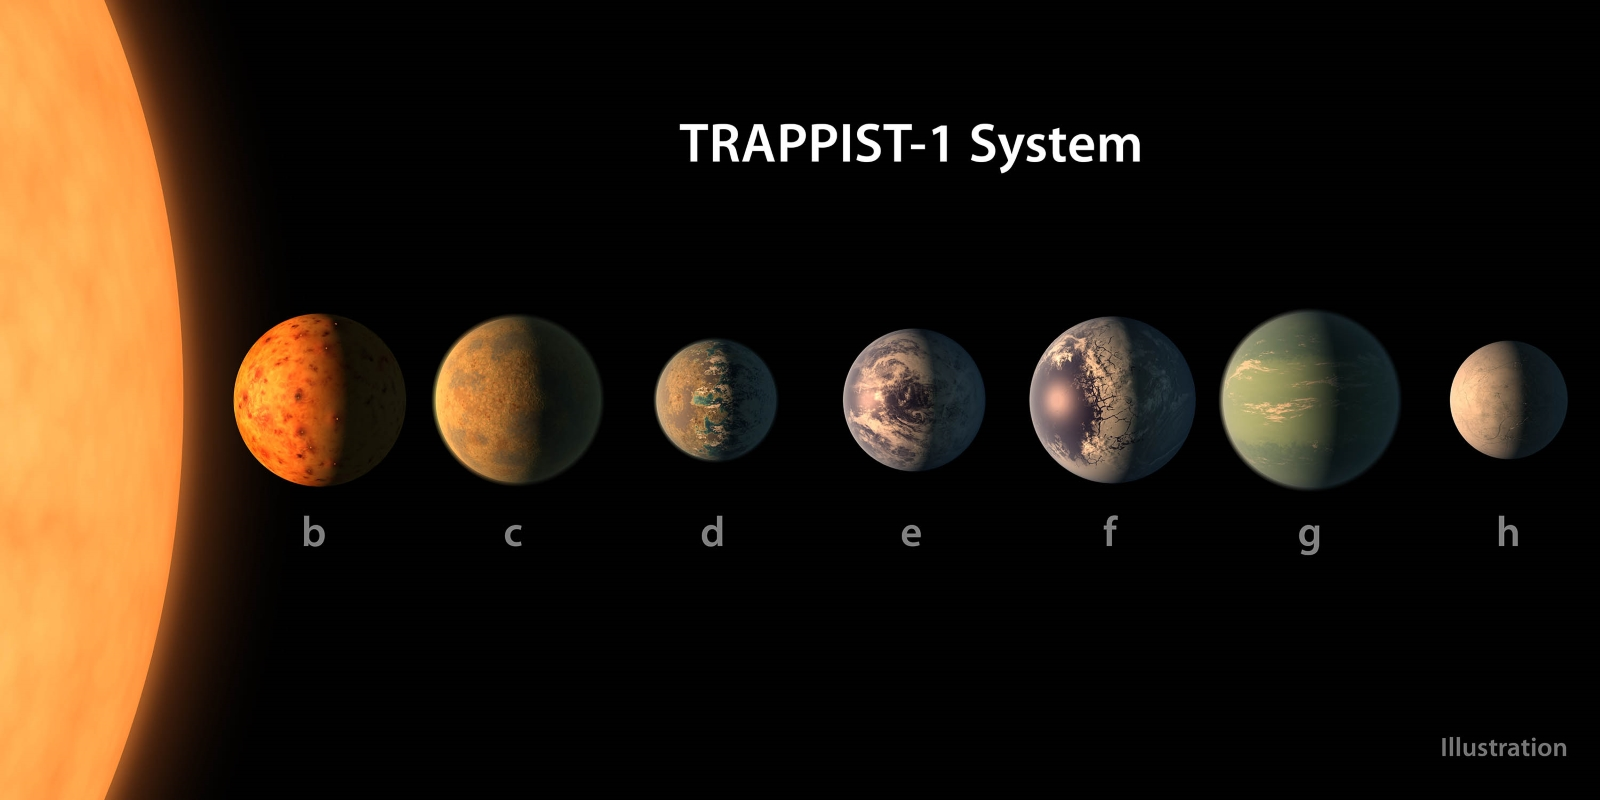 Spitzer discovers TRAPPIST-1 system